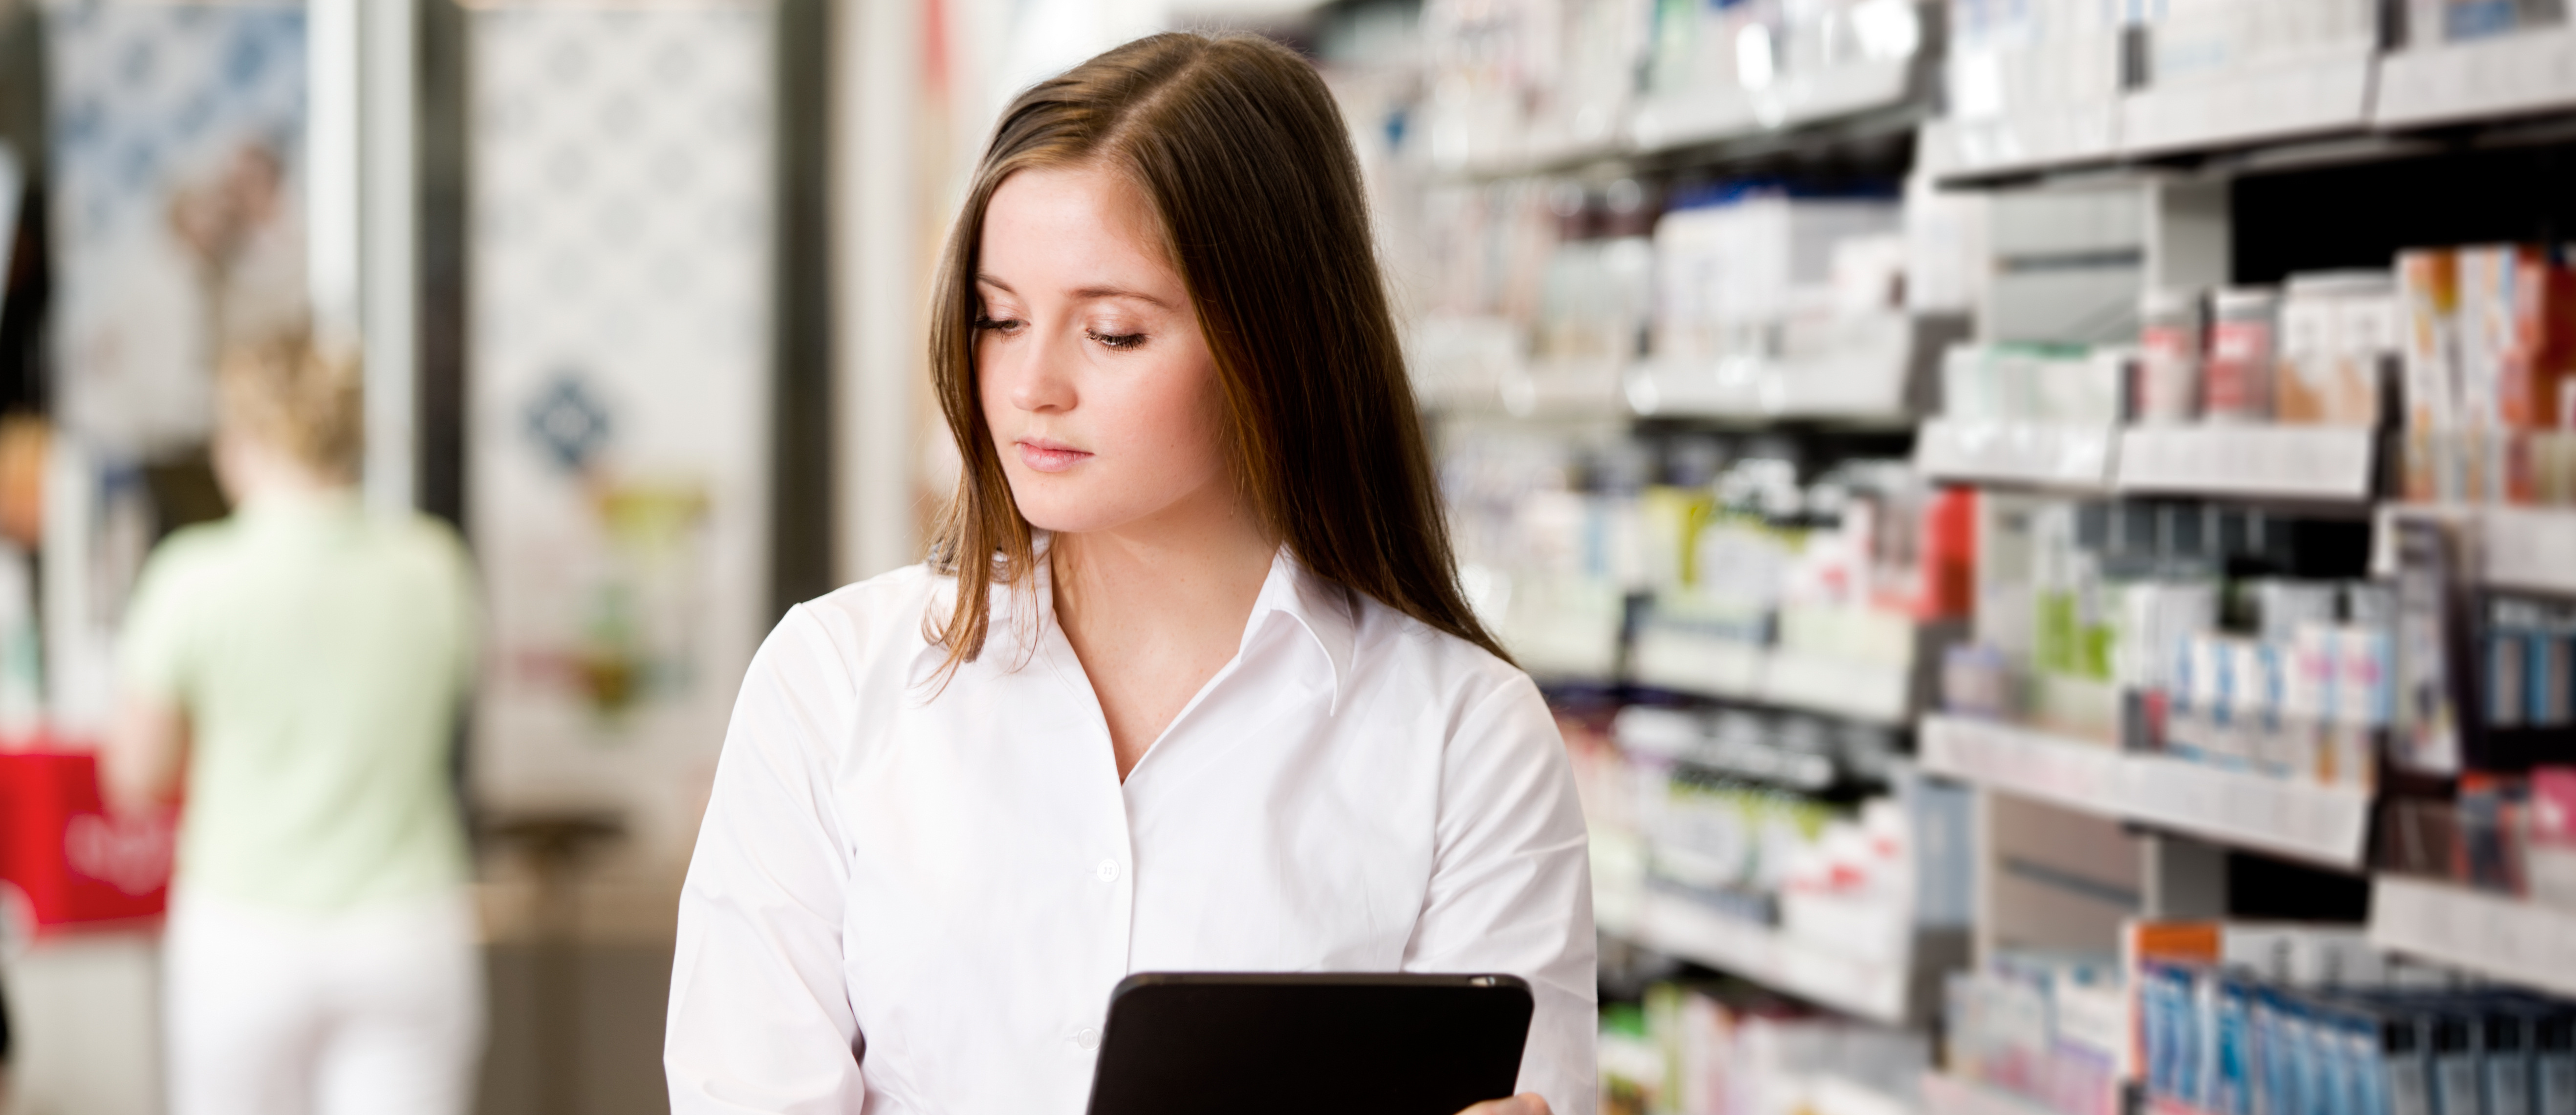 How Are Pharmacy Jobs Changing?